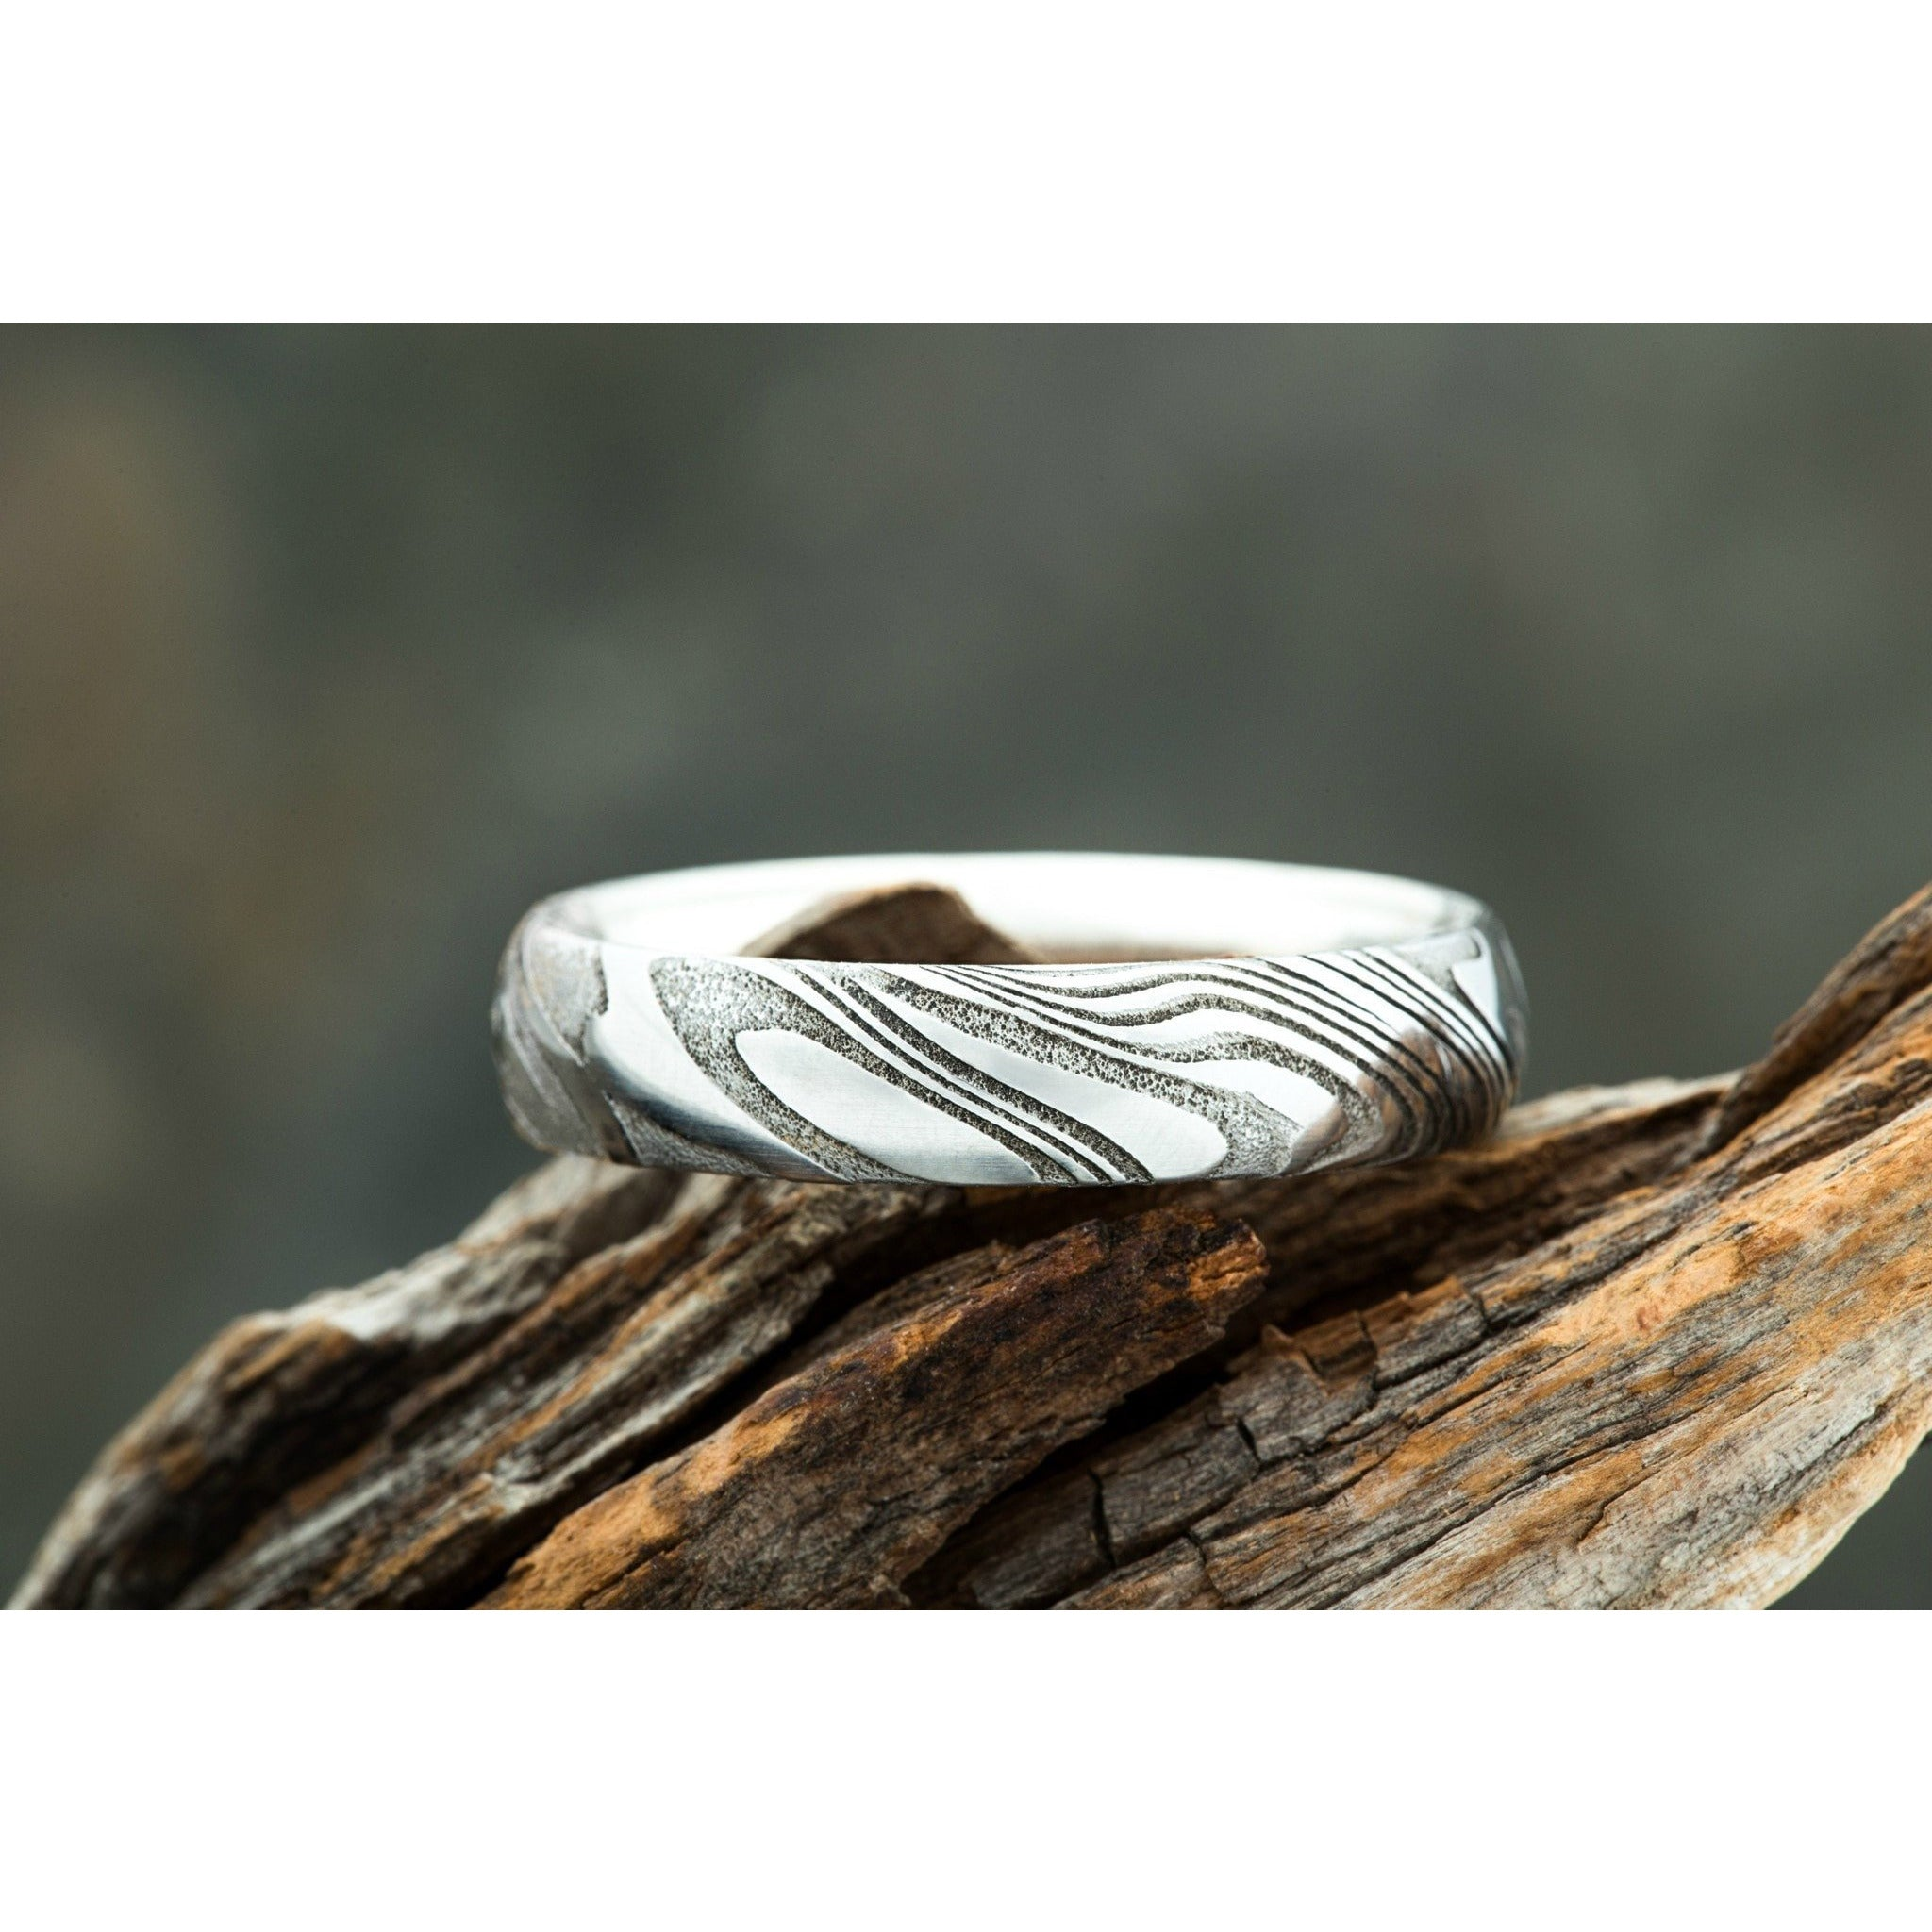 rings tips engraving fullsizerender leaf ring wedding